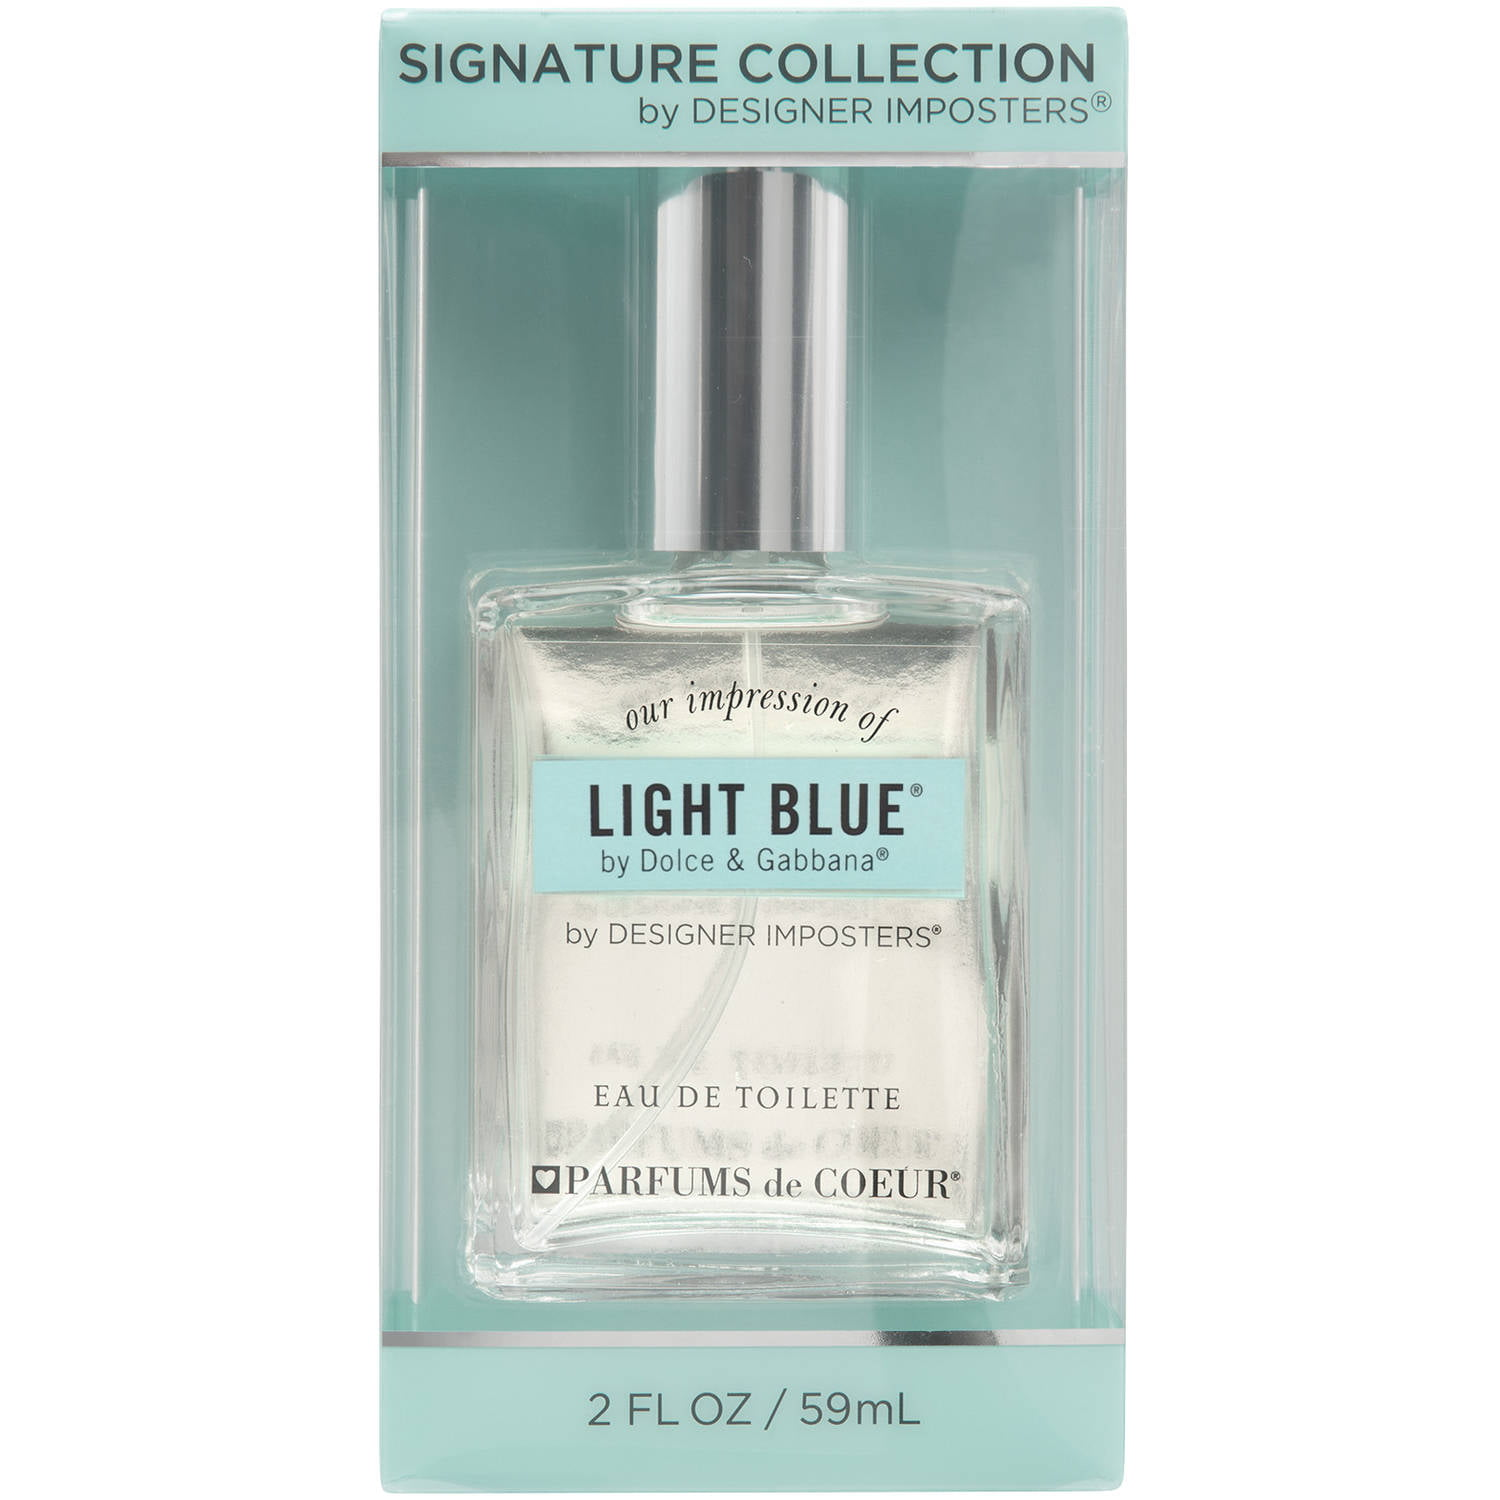 Designer Imposters Our Impression of Light Blue by Dolce Gabbana